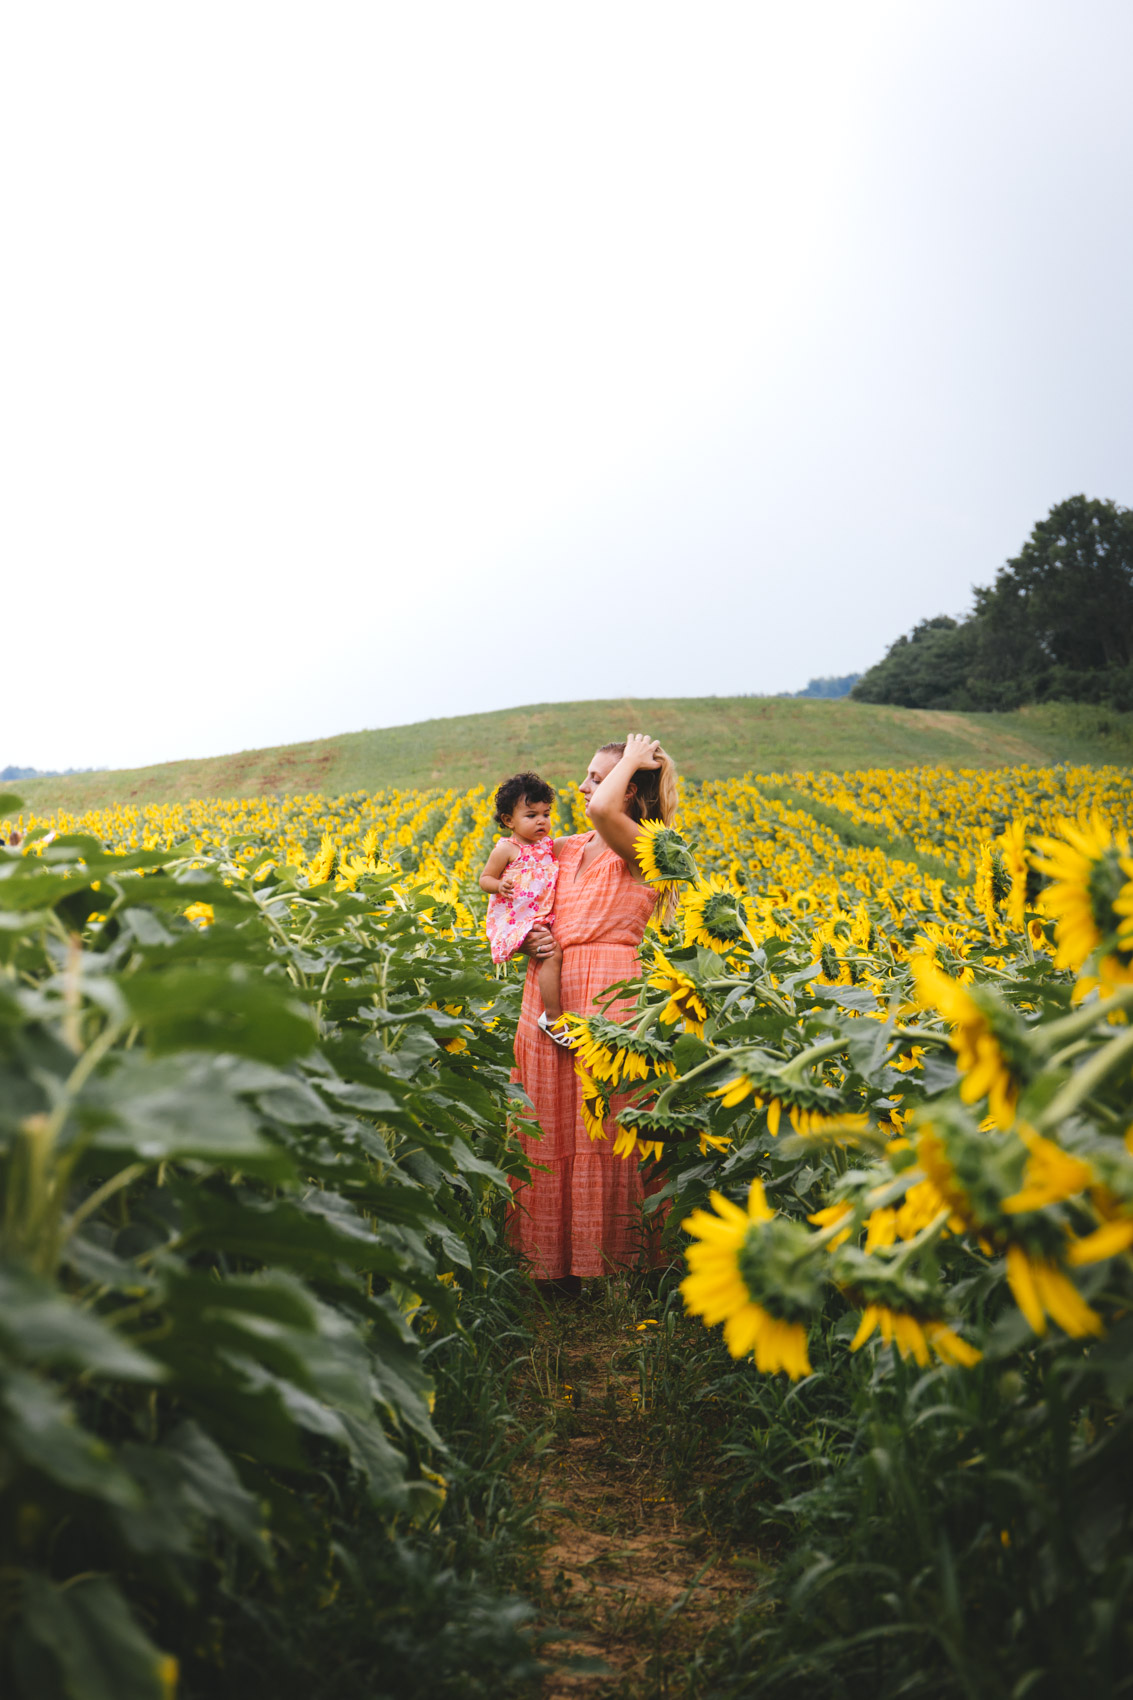 image of sunflower field photoshoot photography ideas for poses, outfits, and aesthetic | what to wear for sunflower field family pictures #sunflowerfield #sunflowerfieldphotoshoot